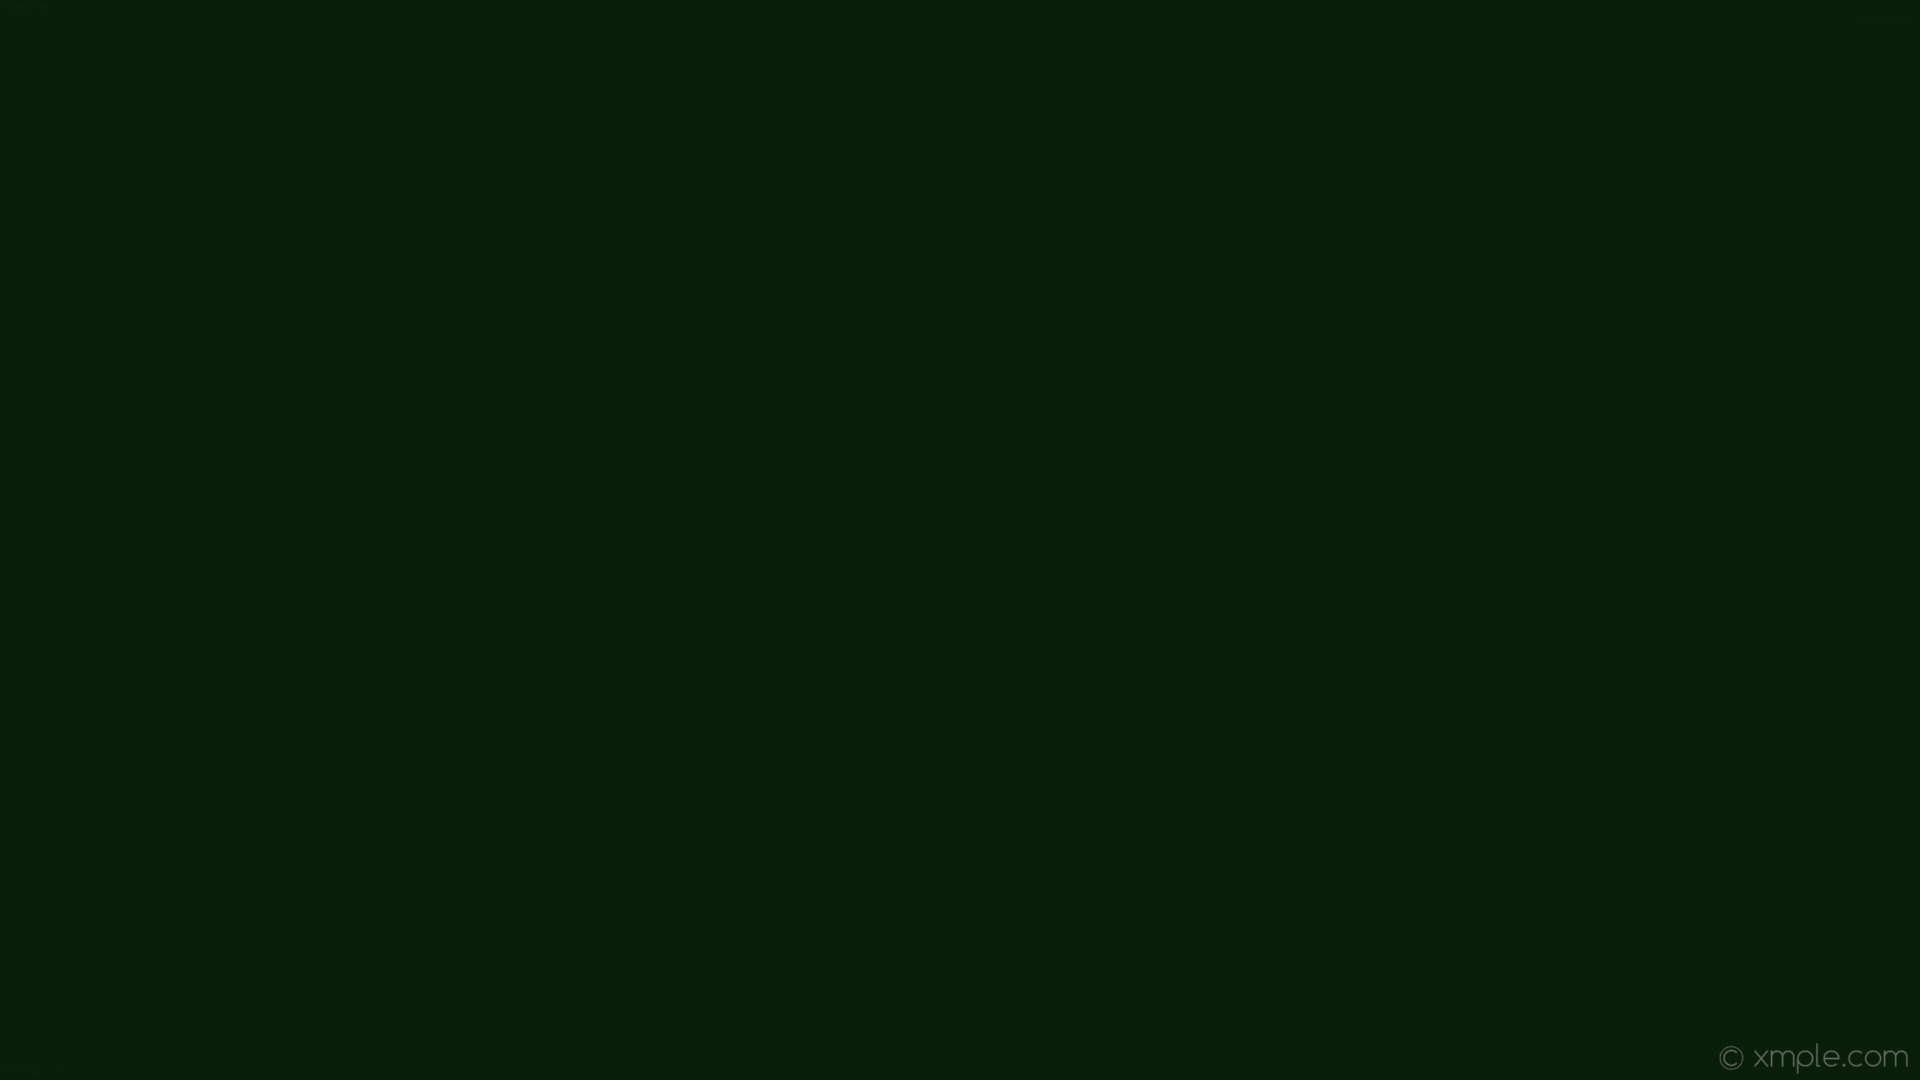 Res: 1920x1080, wallpaper green single one colour solid color plain dark green #0a1f09